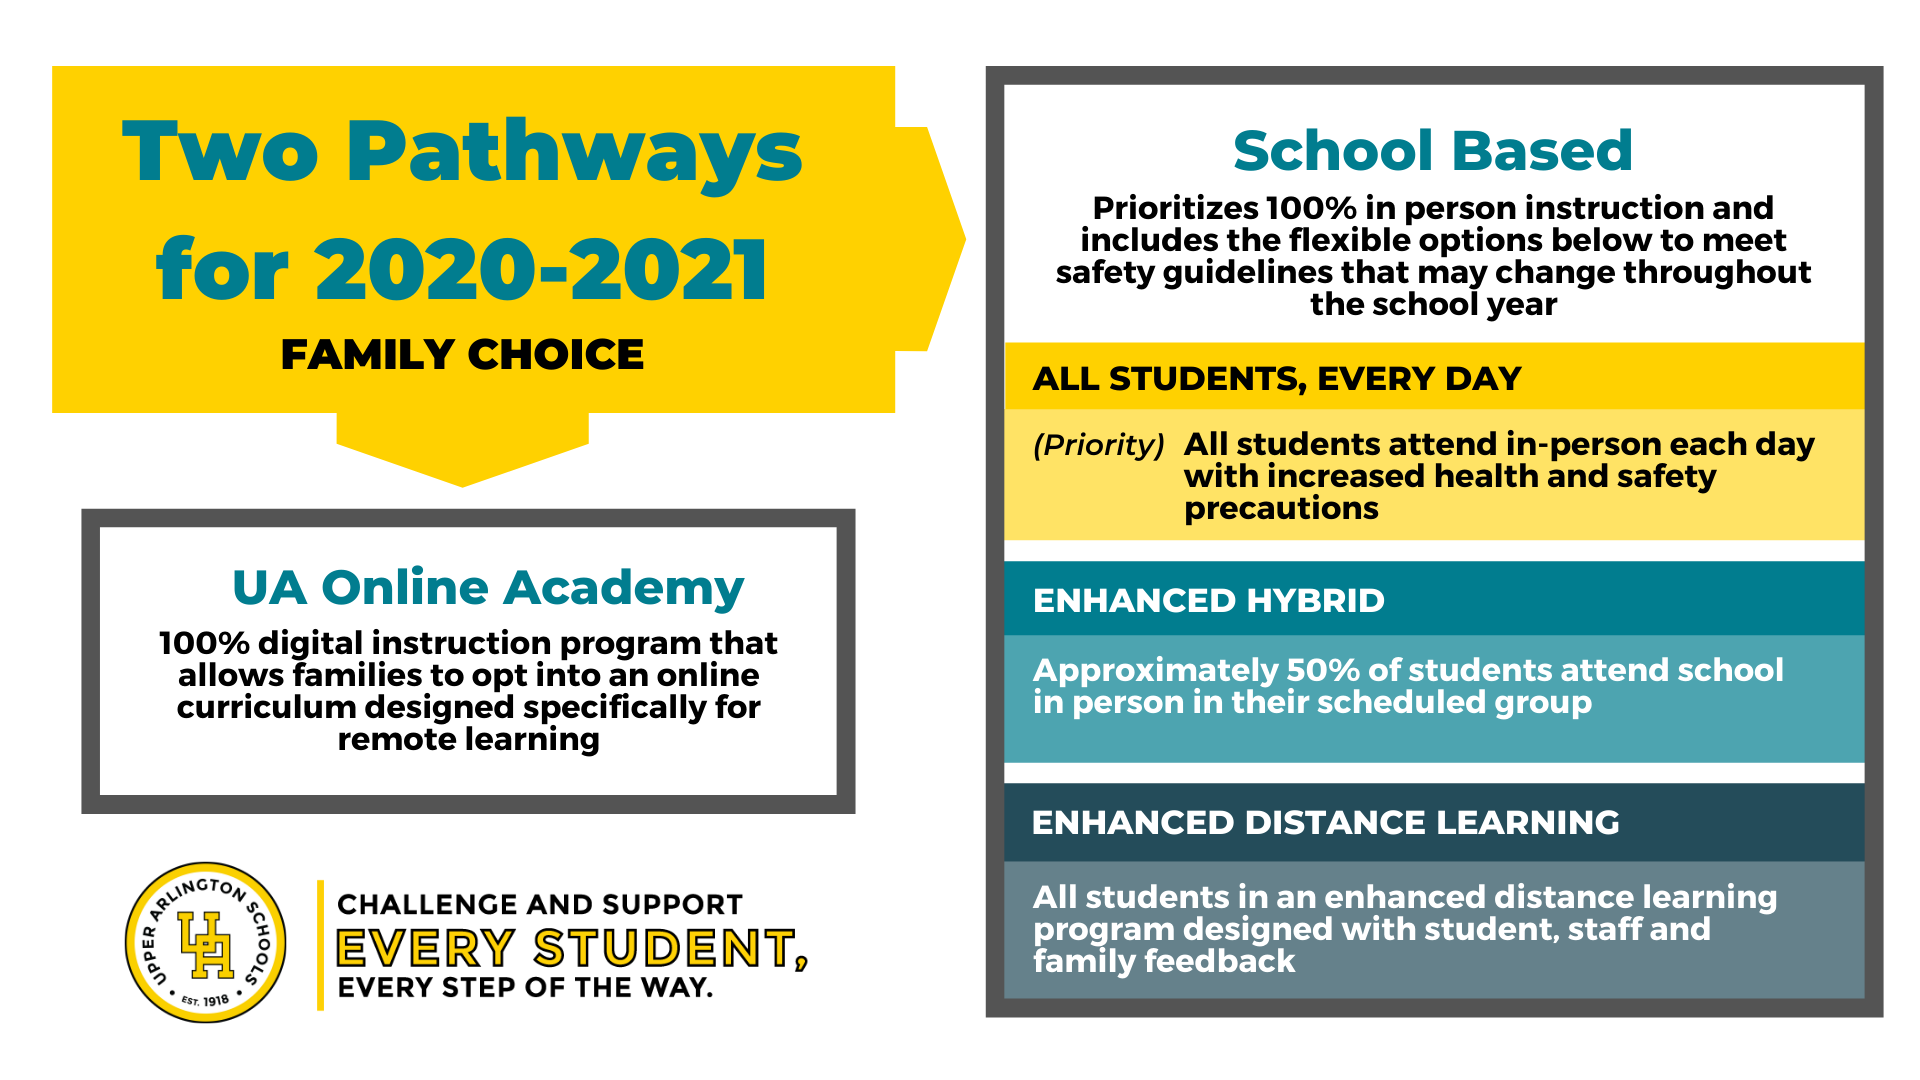 Learning pathways for the 2020-2021 school year